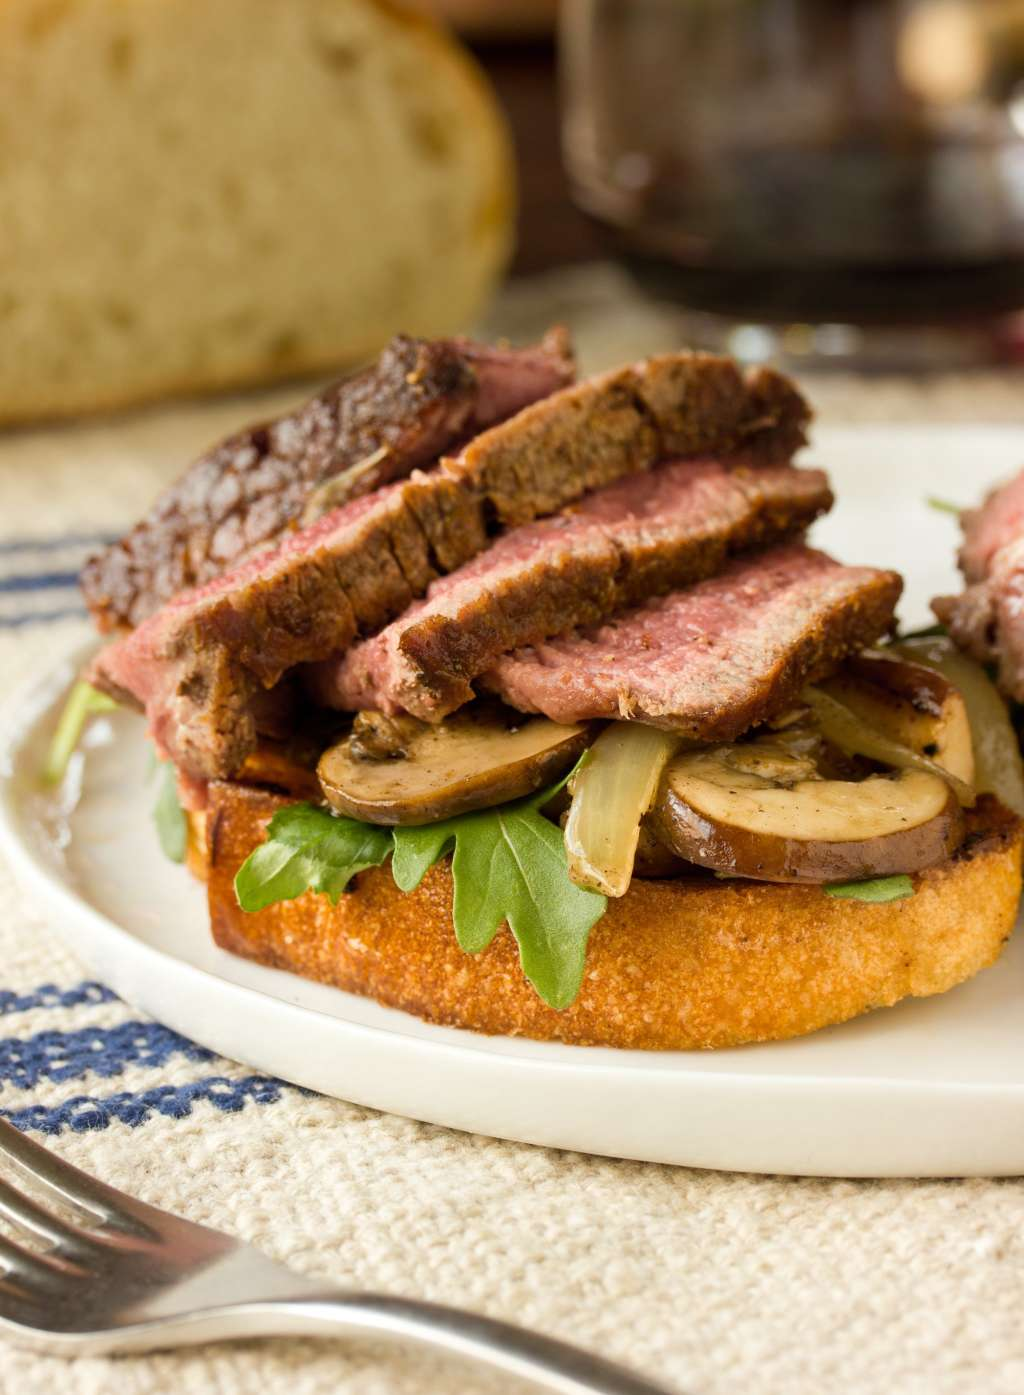 """Dinner Recipe: """"Theater Steak"""" with Mushrooms, Onions & Grilled Bread"""